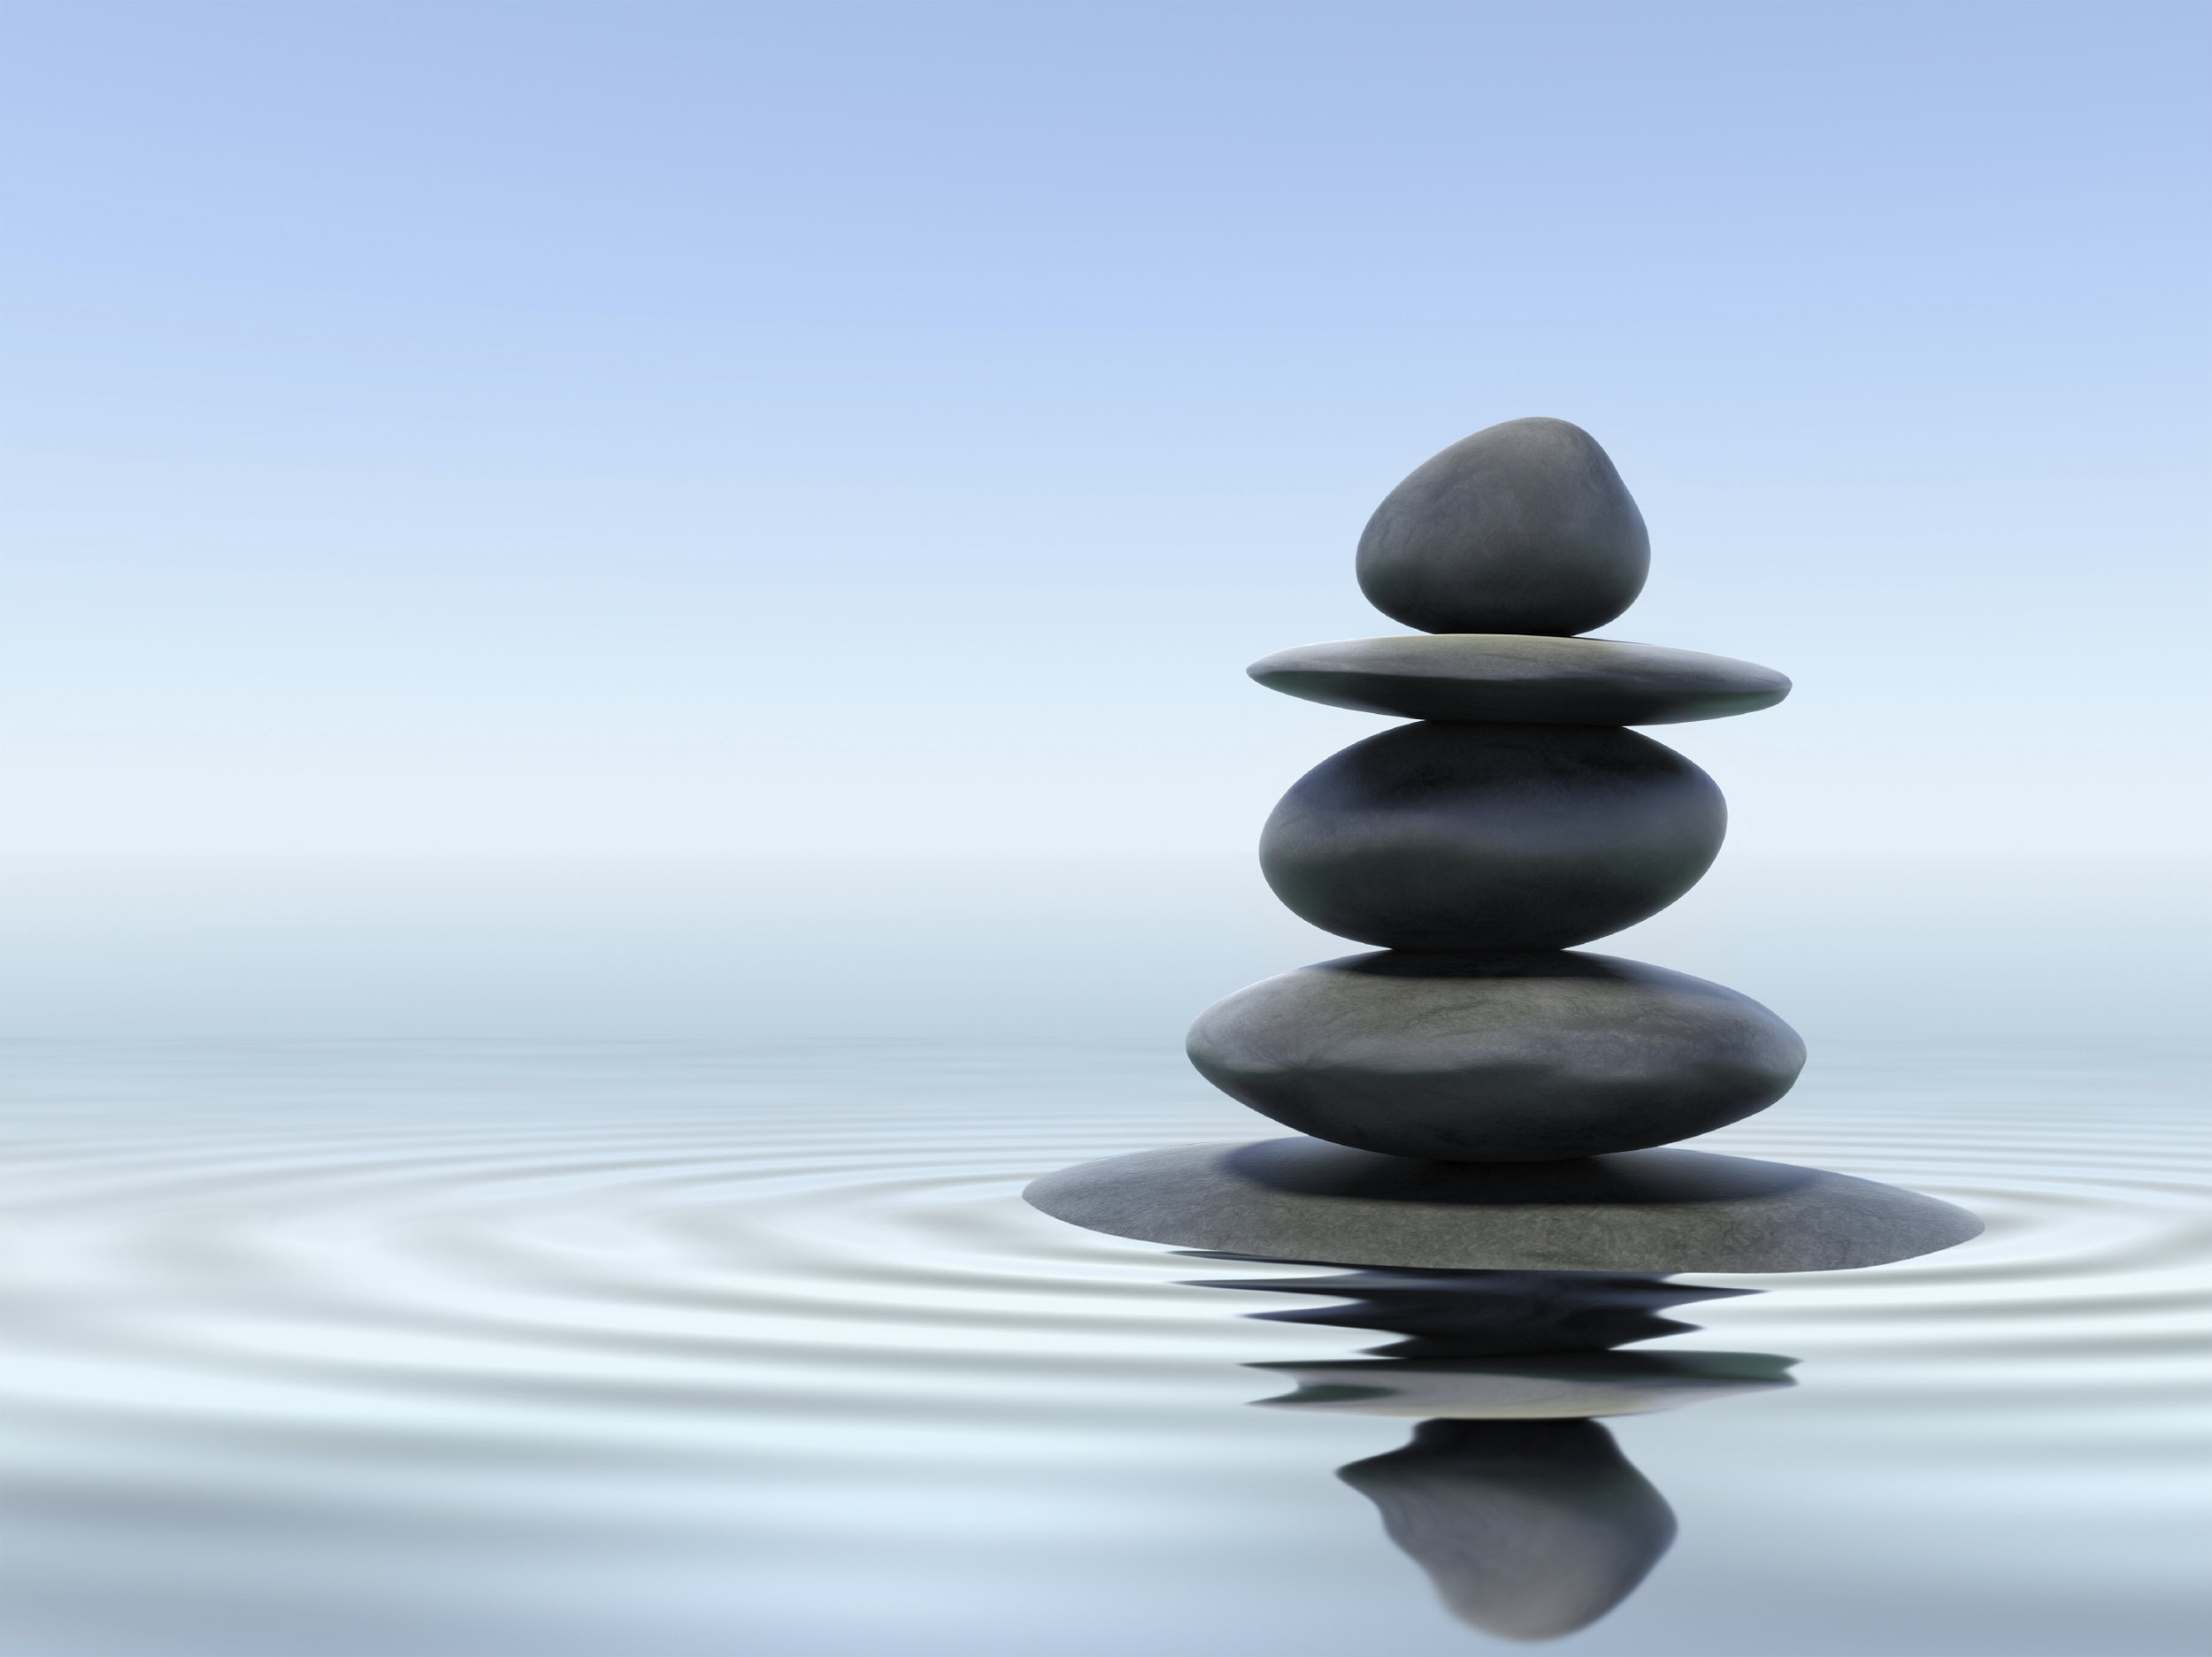 How does mindfulness fit into therapy? - As a person-centered therapist, I act as a mirror for you to investigate yourself as you are right now. It's difficult to make progress without settling in fully to the place you're at. Together, we learn to bring awareness to tendencies that add to stress and suffering, and learn to sit with discomfort. We may also review basic mindfulness strategies to integrate into daily life, which have been shown to change brain and body chemistry with regular practice.